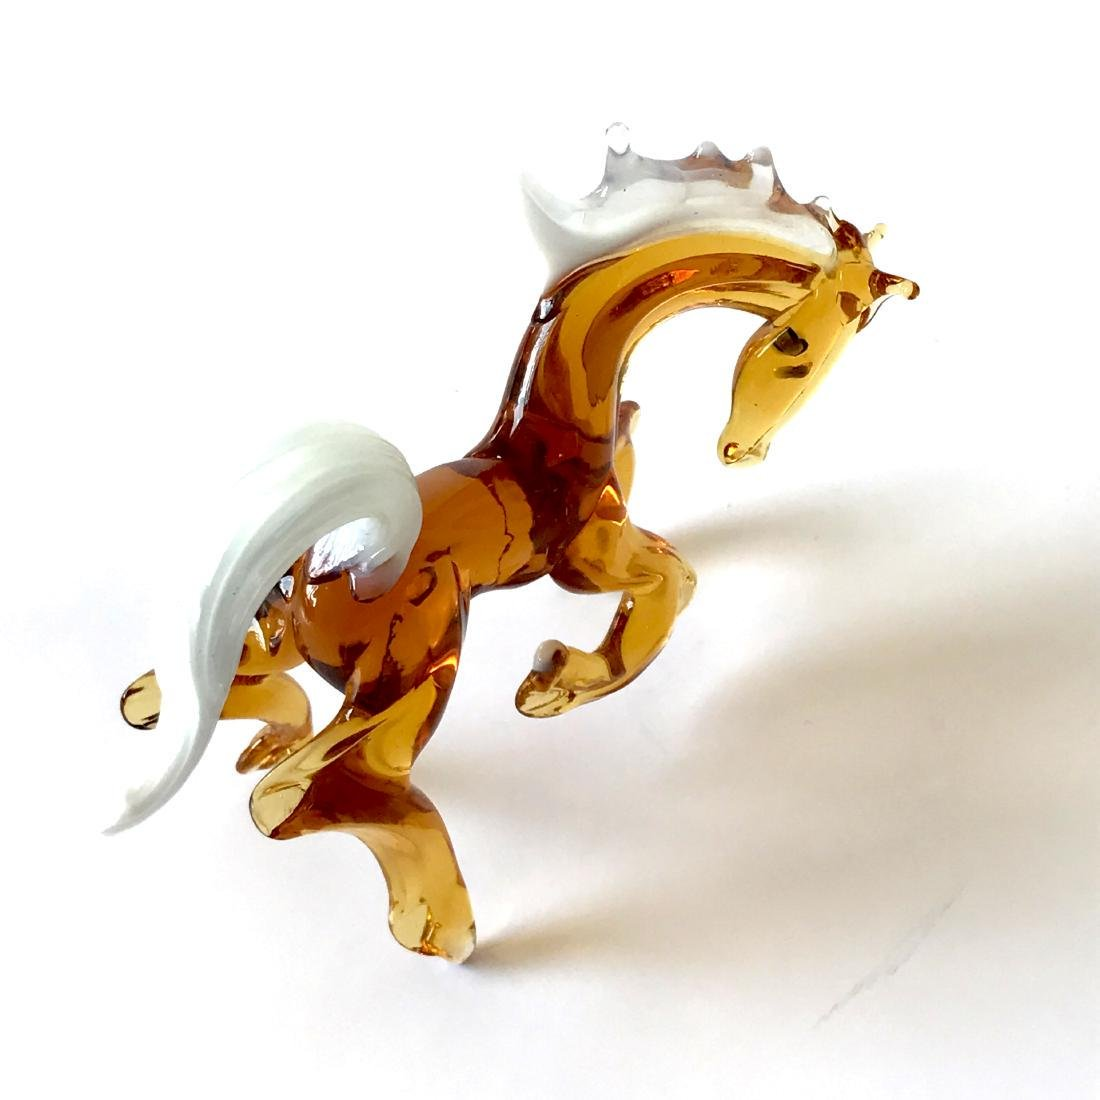 Figurine of horse amber coloured hand blown glass 10x12 - 5